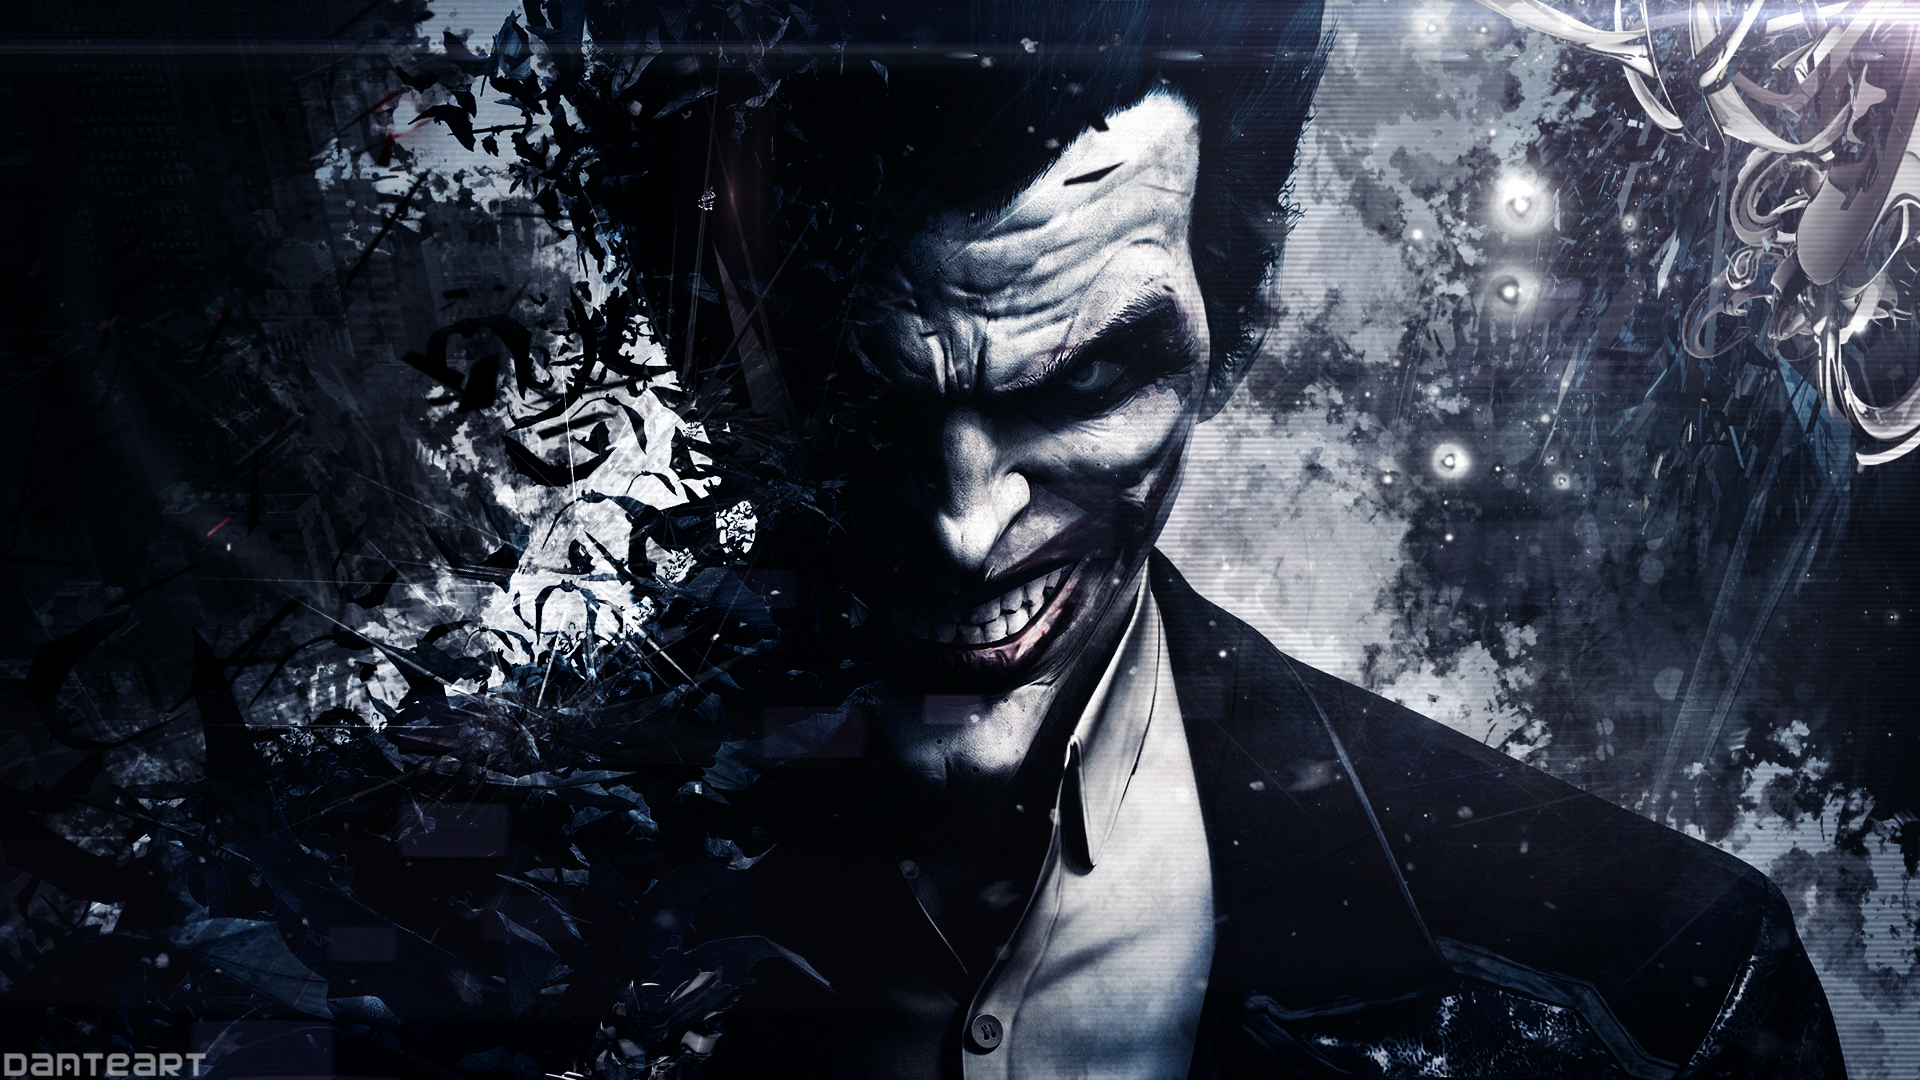 Batman Arkham Origins Joker wallpaper   1303336 1920x1080